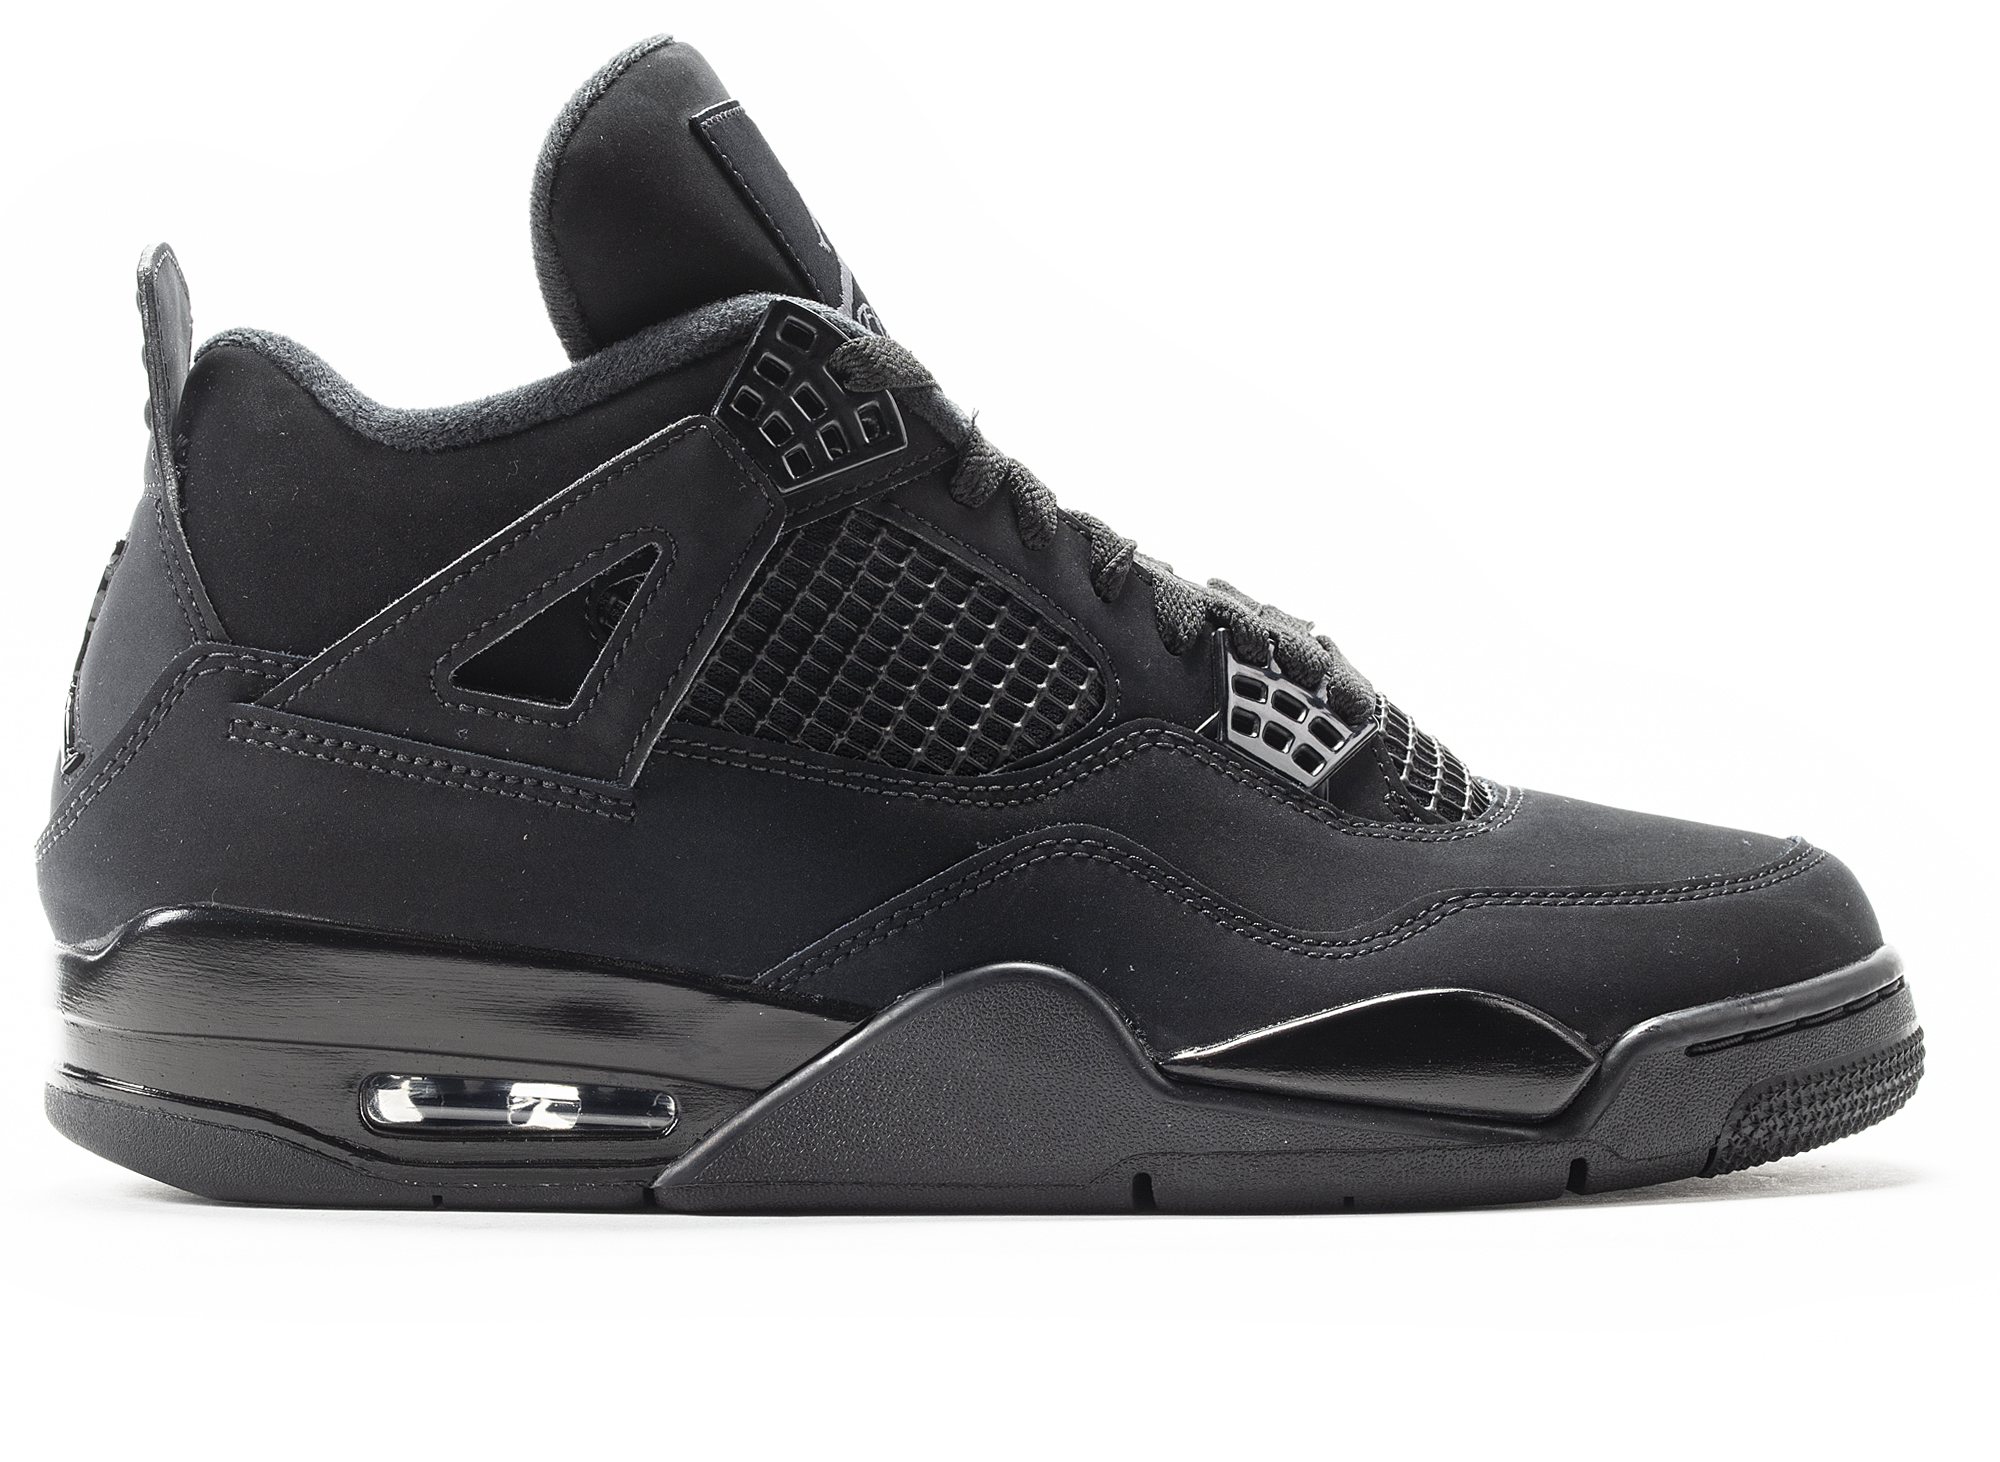 Air Jordan 4 Retro 'Black Cat' XLD